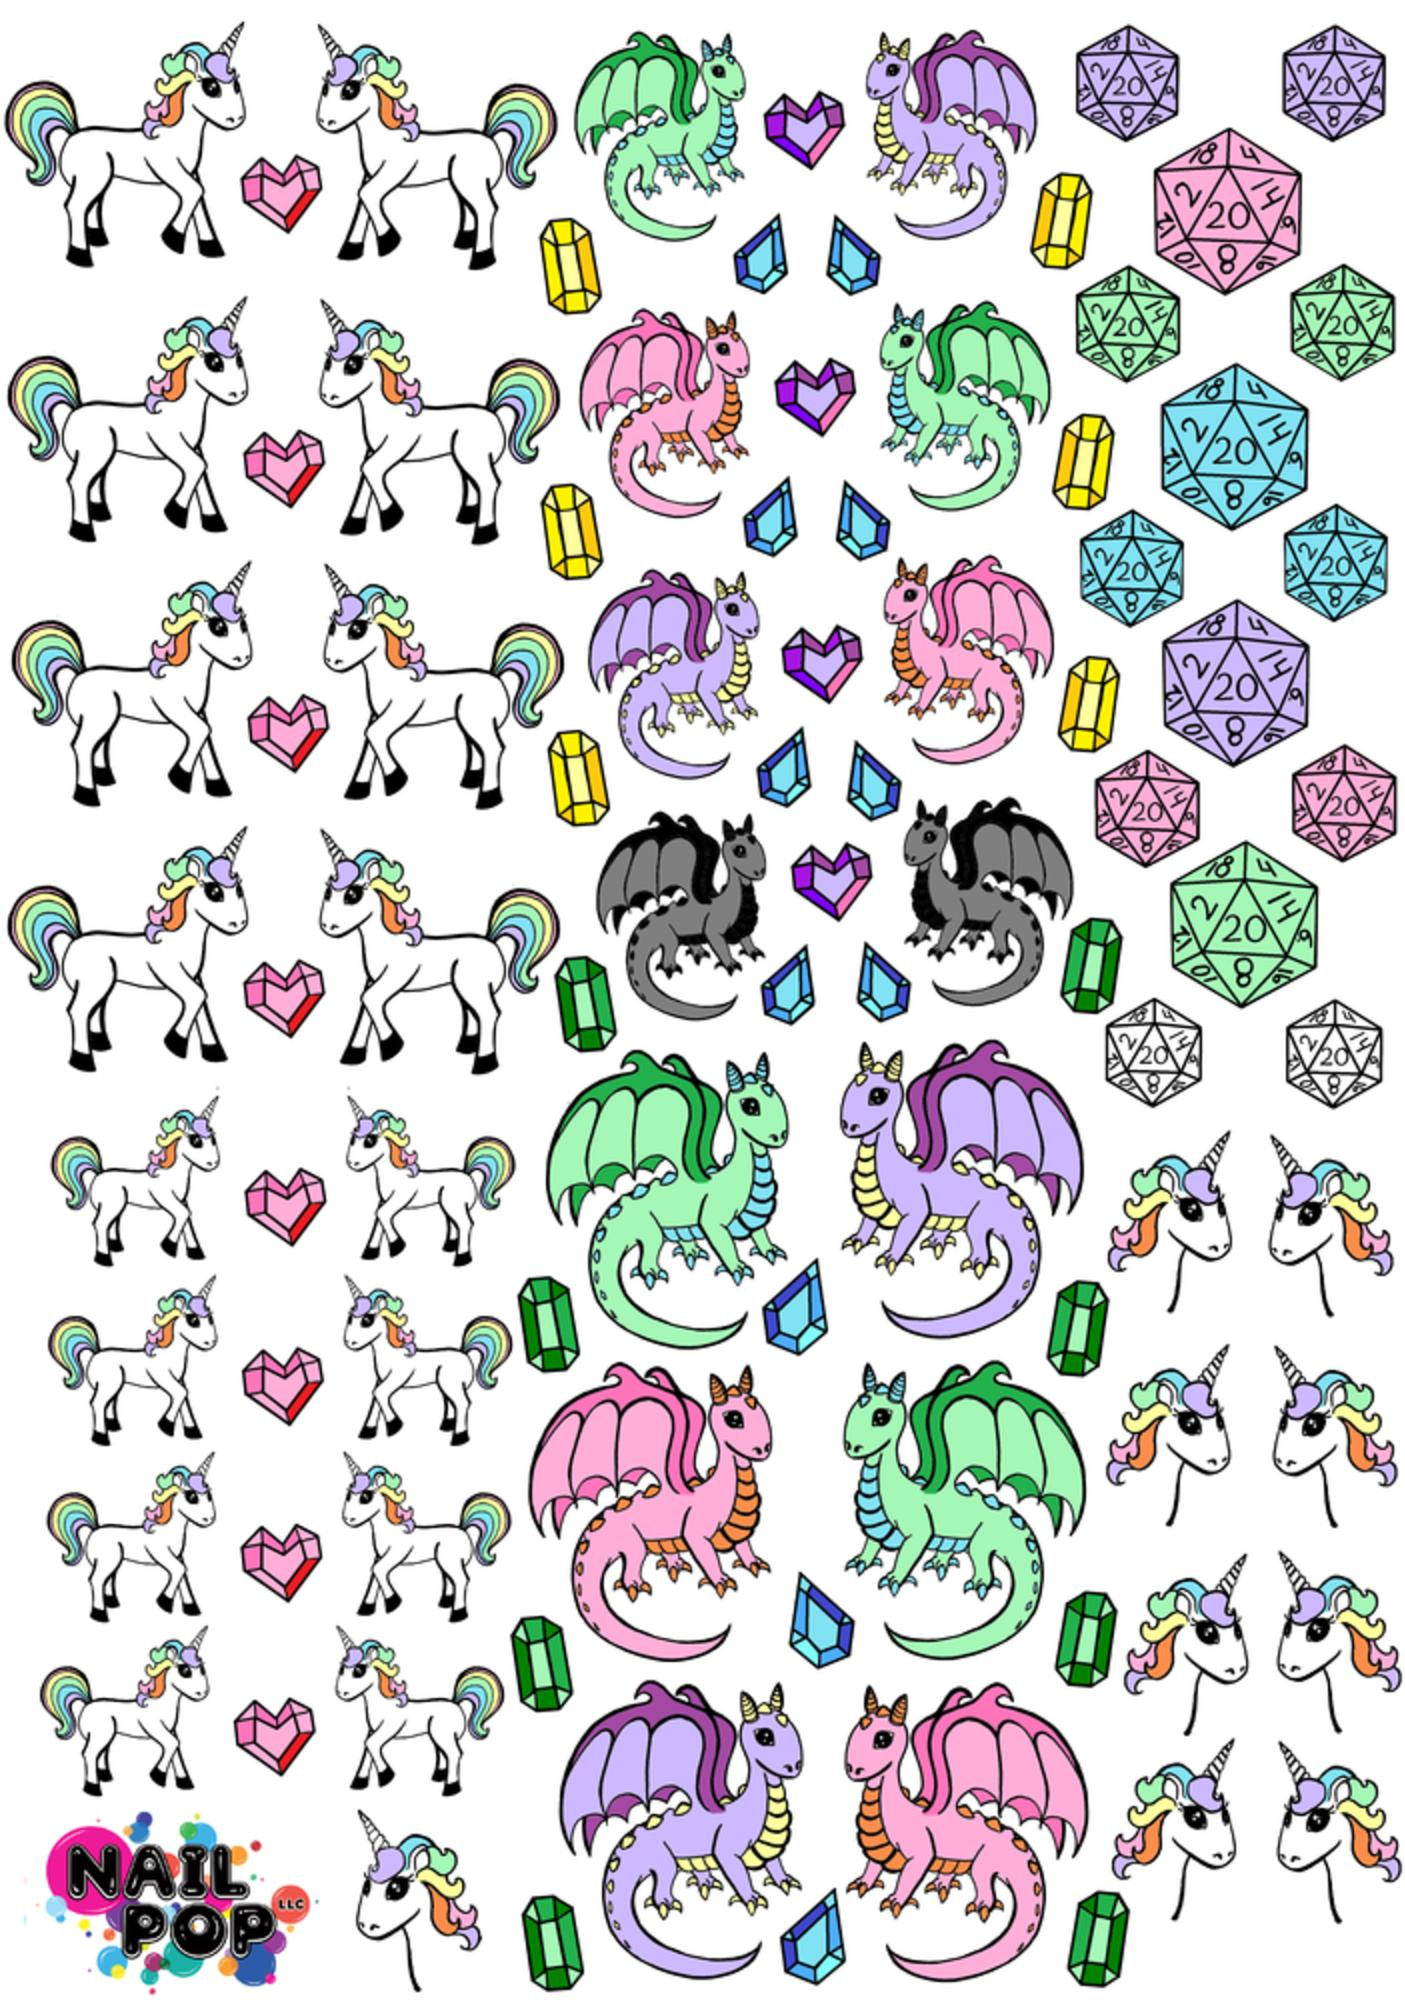 Nail Pop RPG Fantasee Water Slide Decals